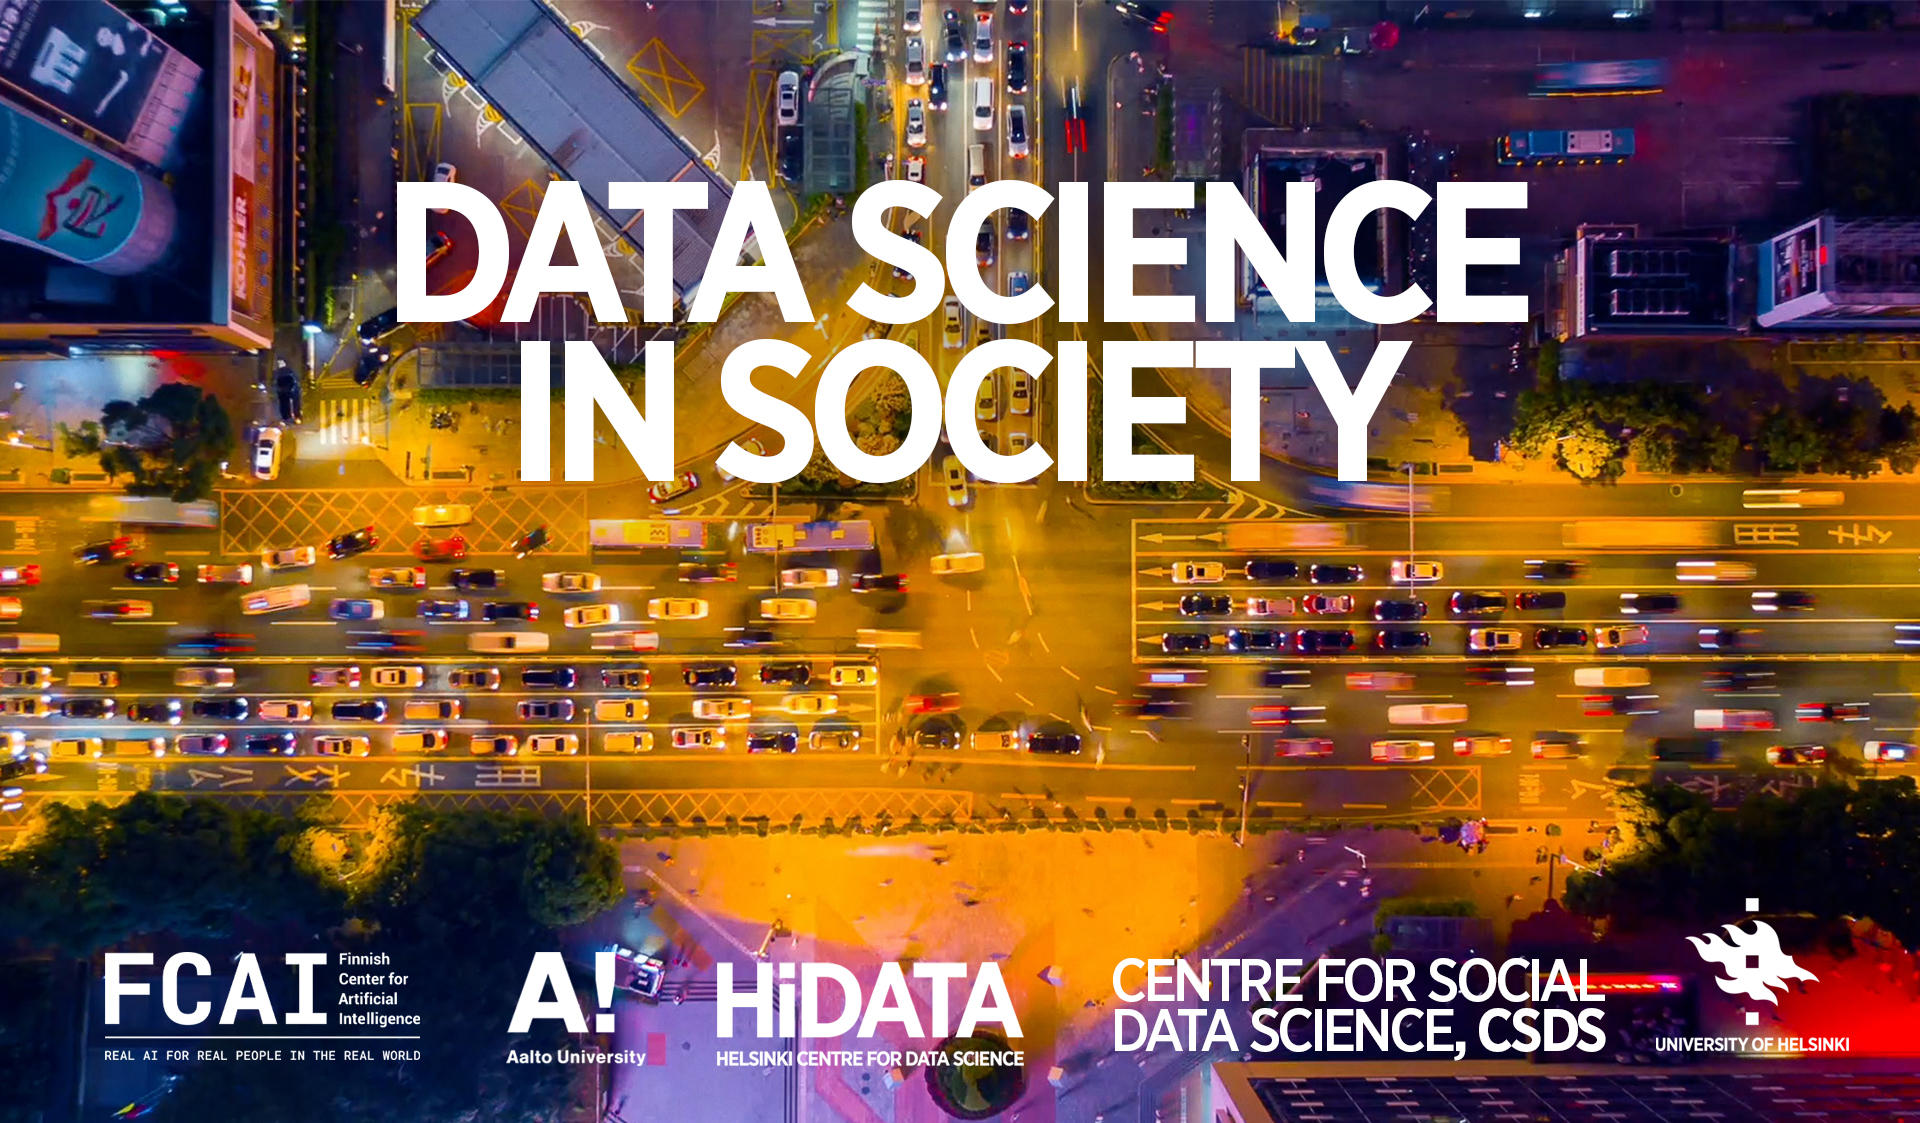 HiDATA_event_Data_Science_in_society